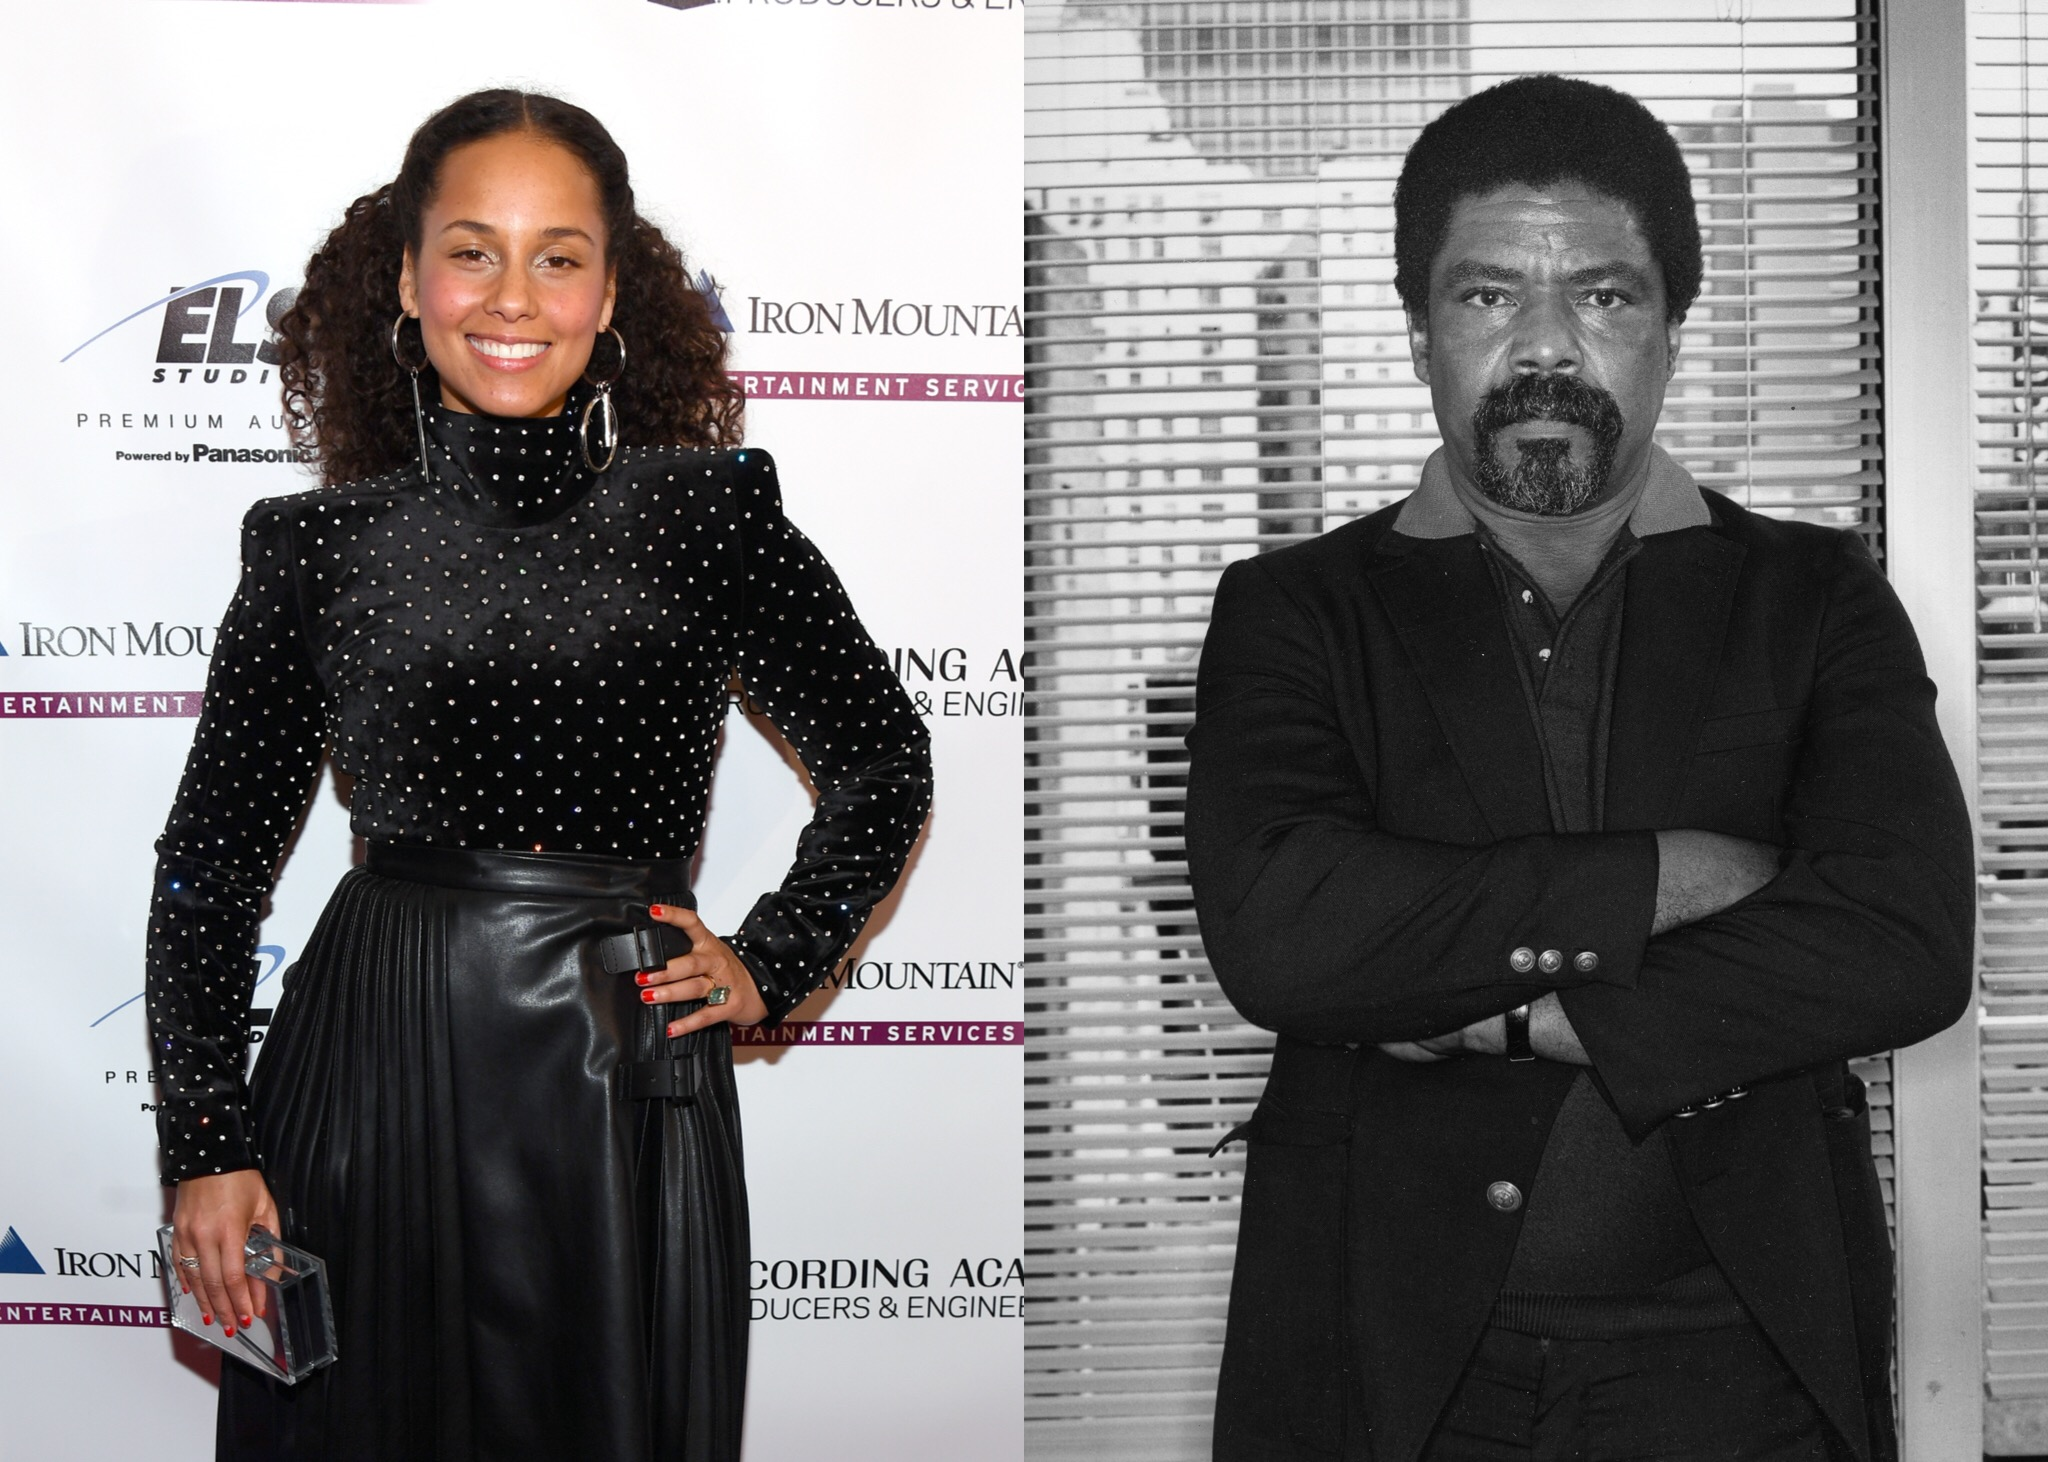 Alicia Keys To Produce A Biopic On Choreographer Alvin AileyAlicia Keys To Produce A Biopic On Choreographer Alvin AileyAlicia Keys To Produce A Biopic On Choreographer Alvin Ailey